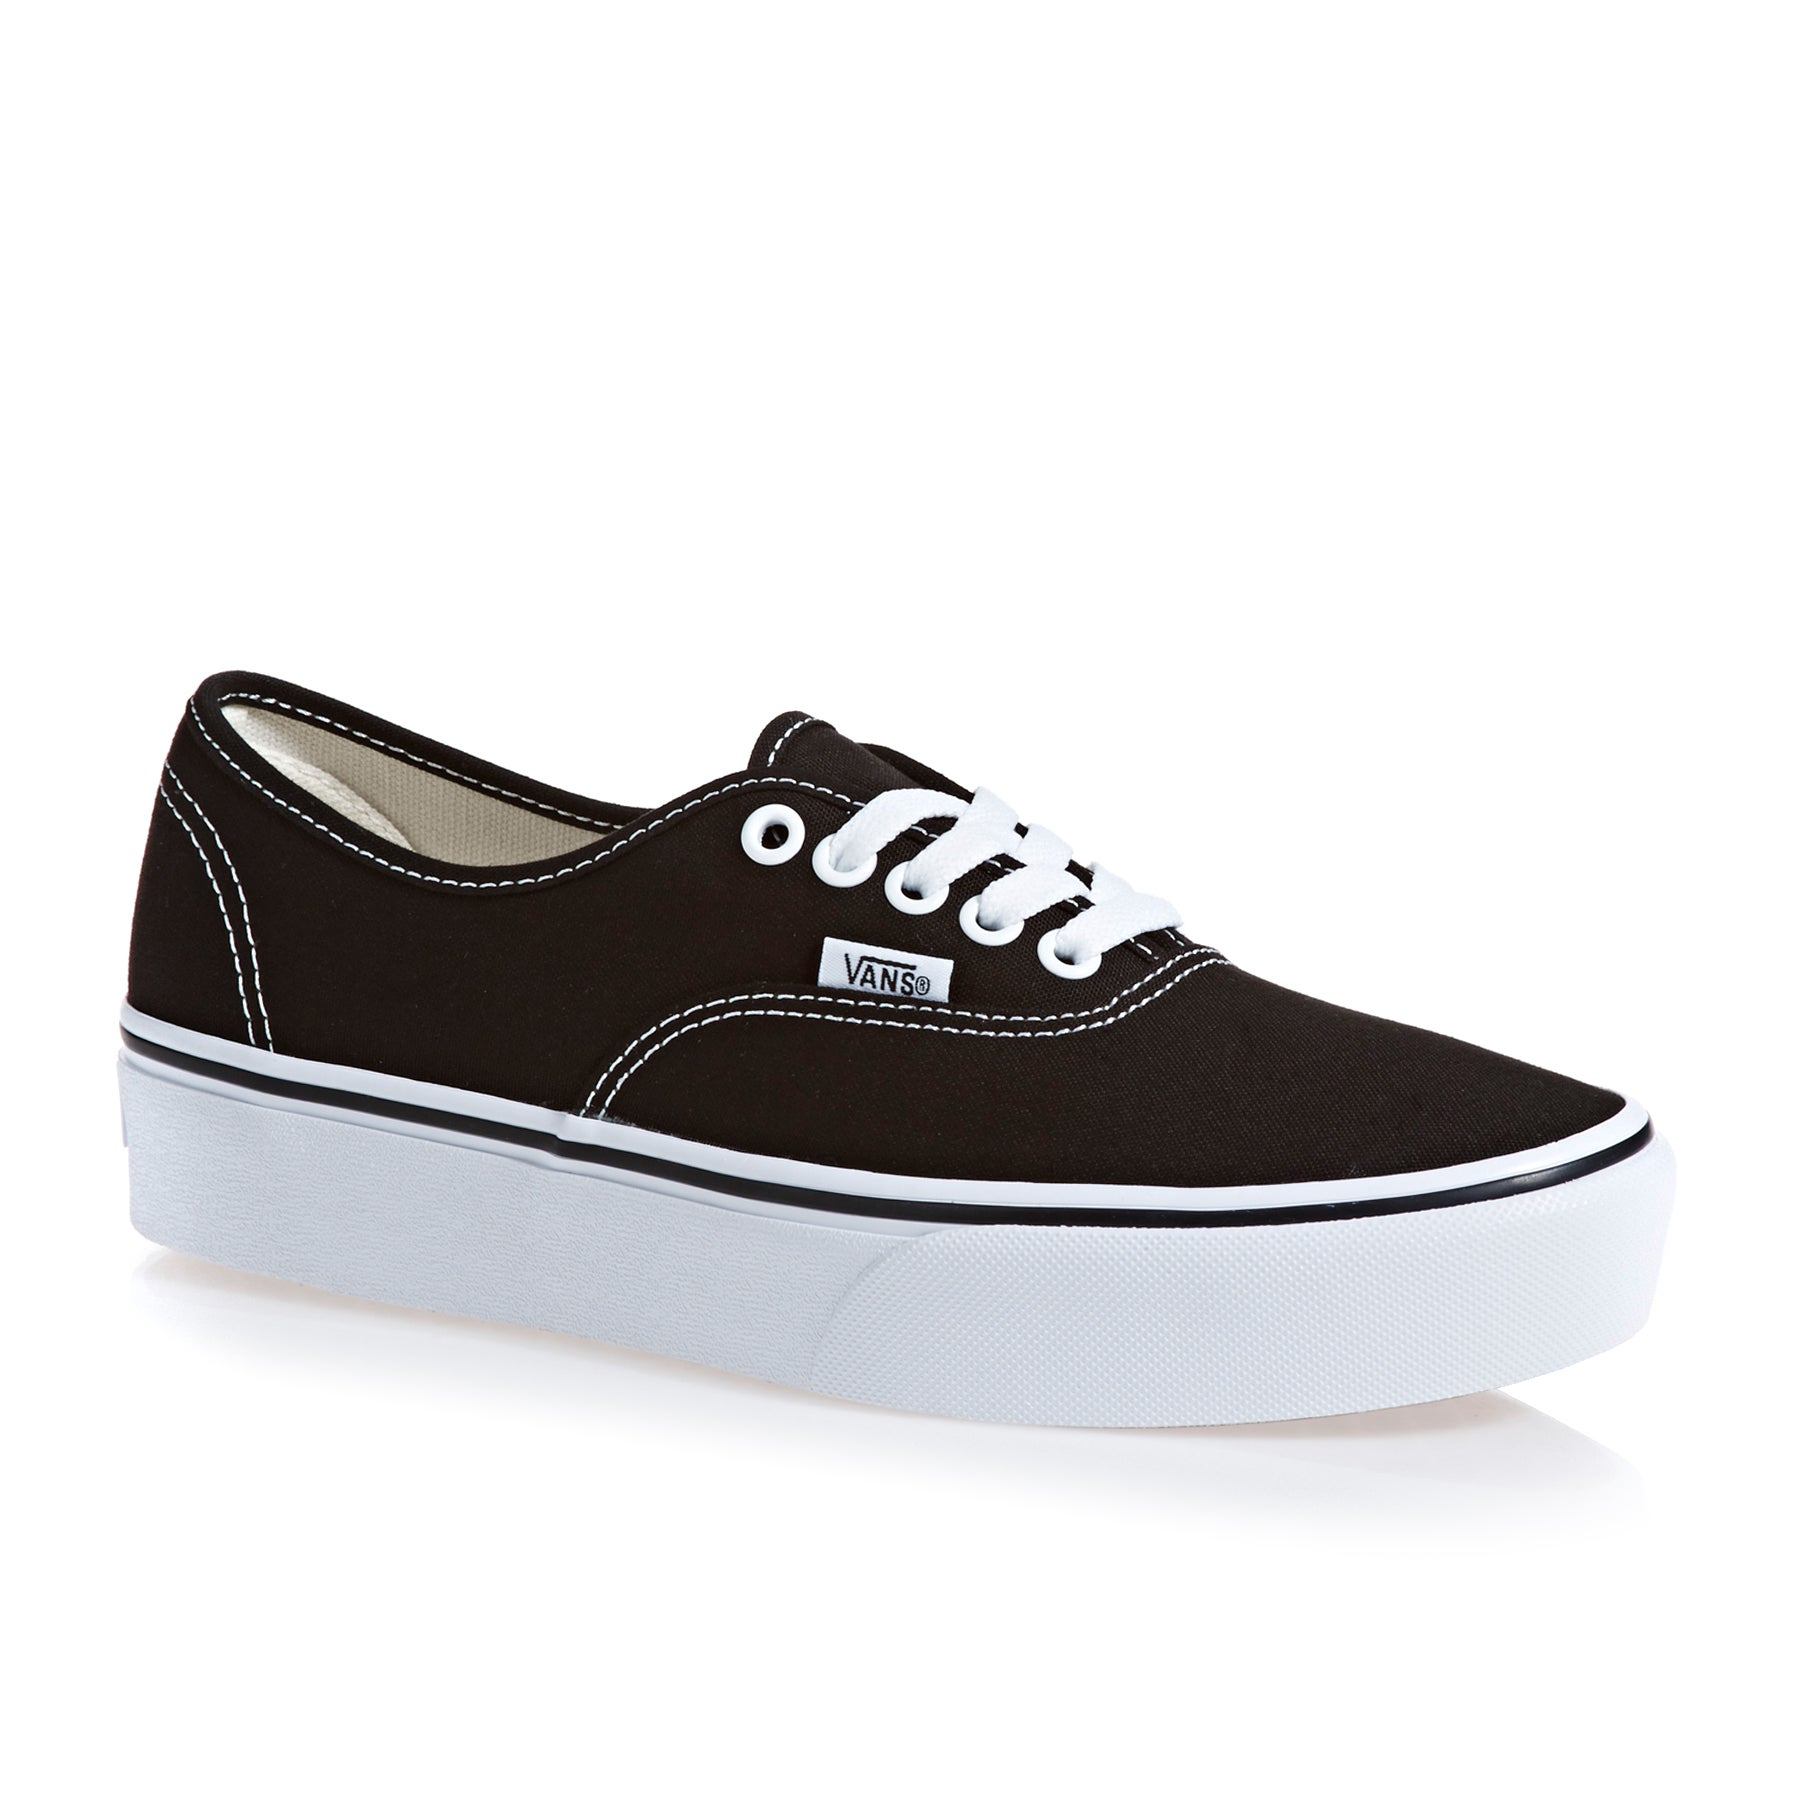 f5467b50e43 2 Shoes Vans Womens 0 From Available Surfdome Authentic Platform XqS7S4P